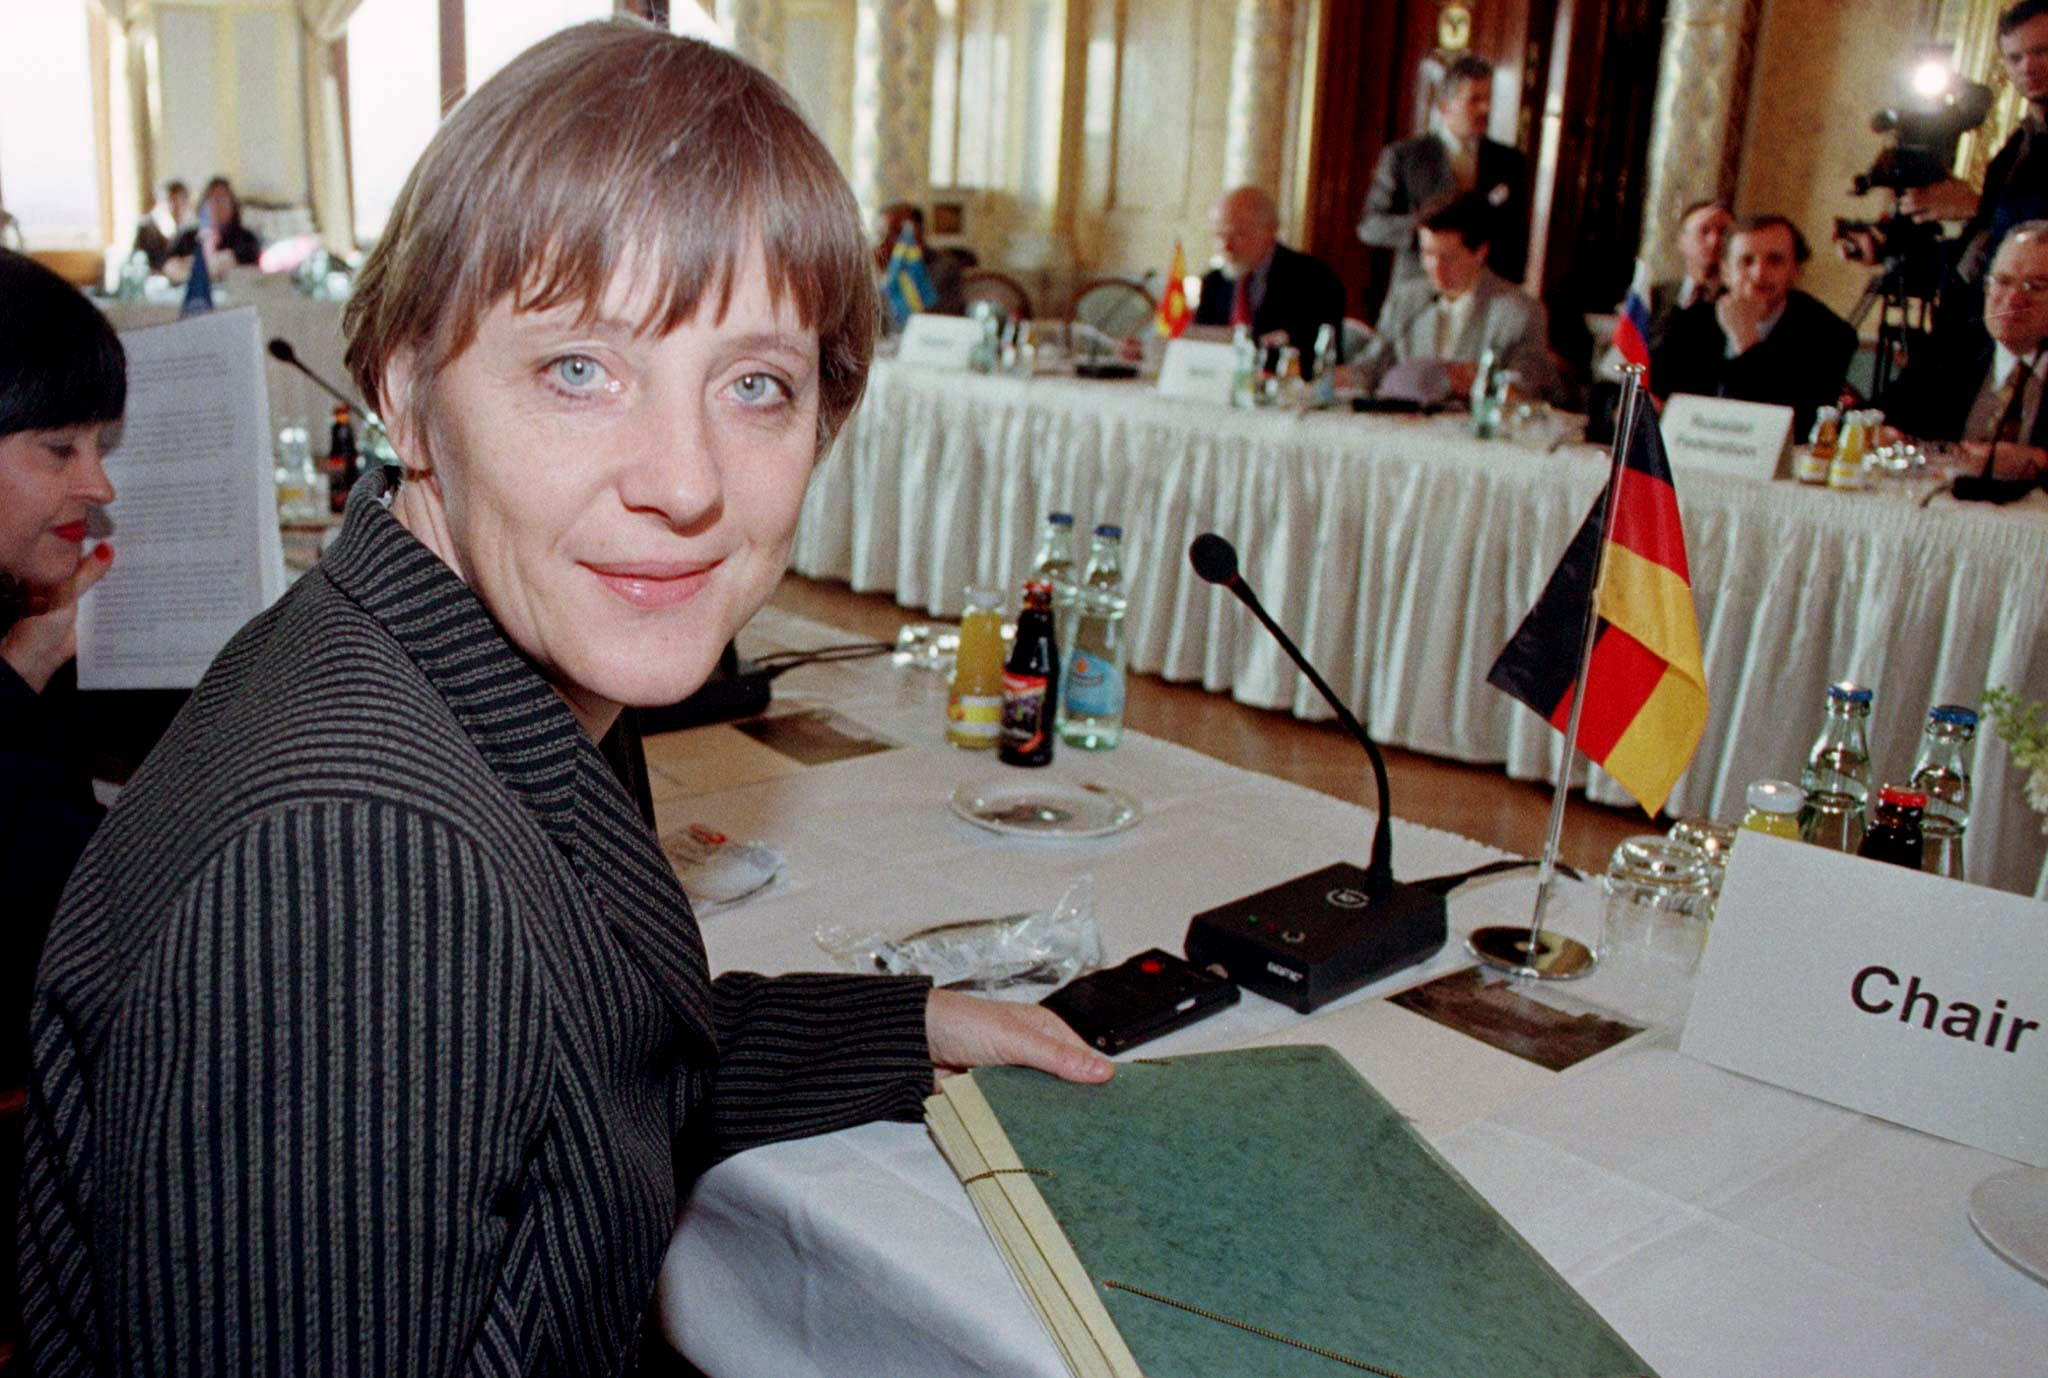 German Environment Minister Angela Merkel smiles prior to a environmental ministers conference at Albrechtsburg castle in Dresden, March 23. Ministers from 21 countries will attend the annual conference to discuss environmental issues.  GERMANY - RP1DRICZETAC